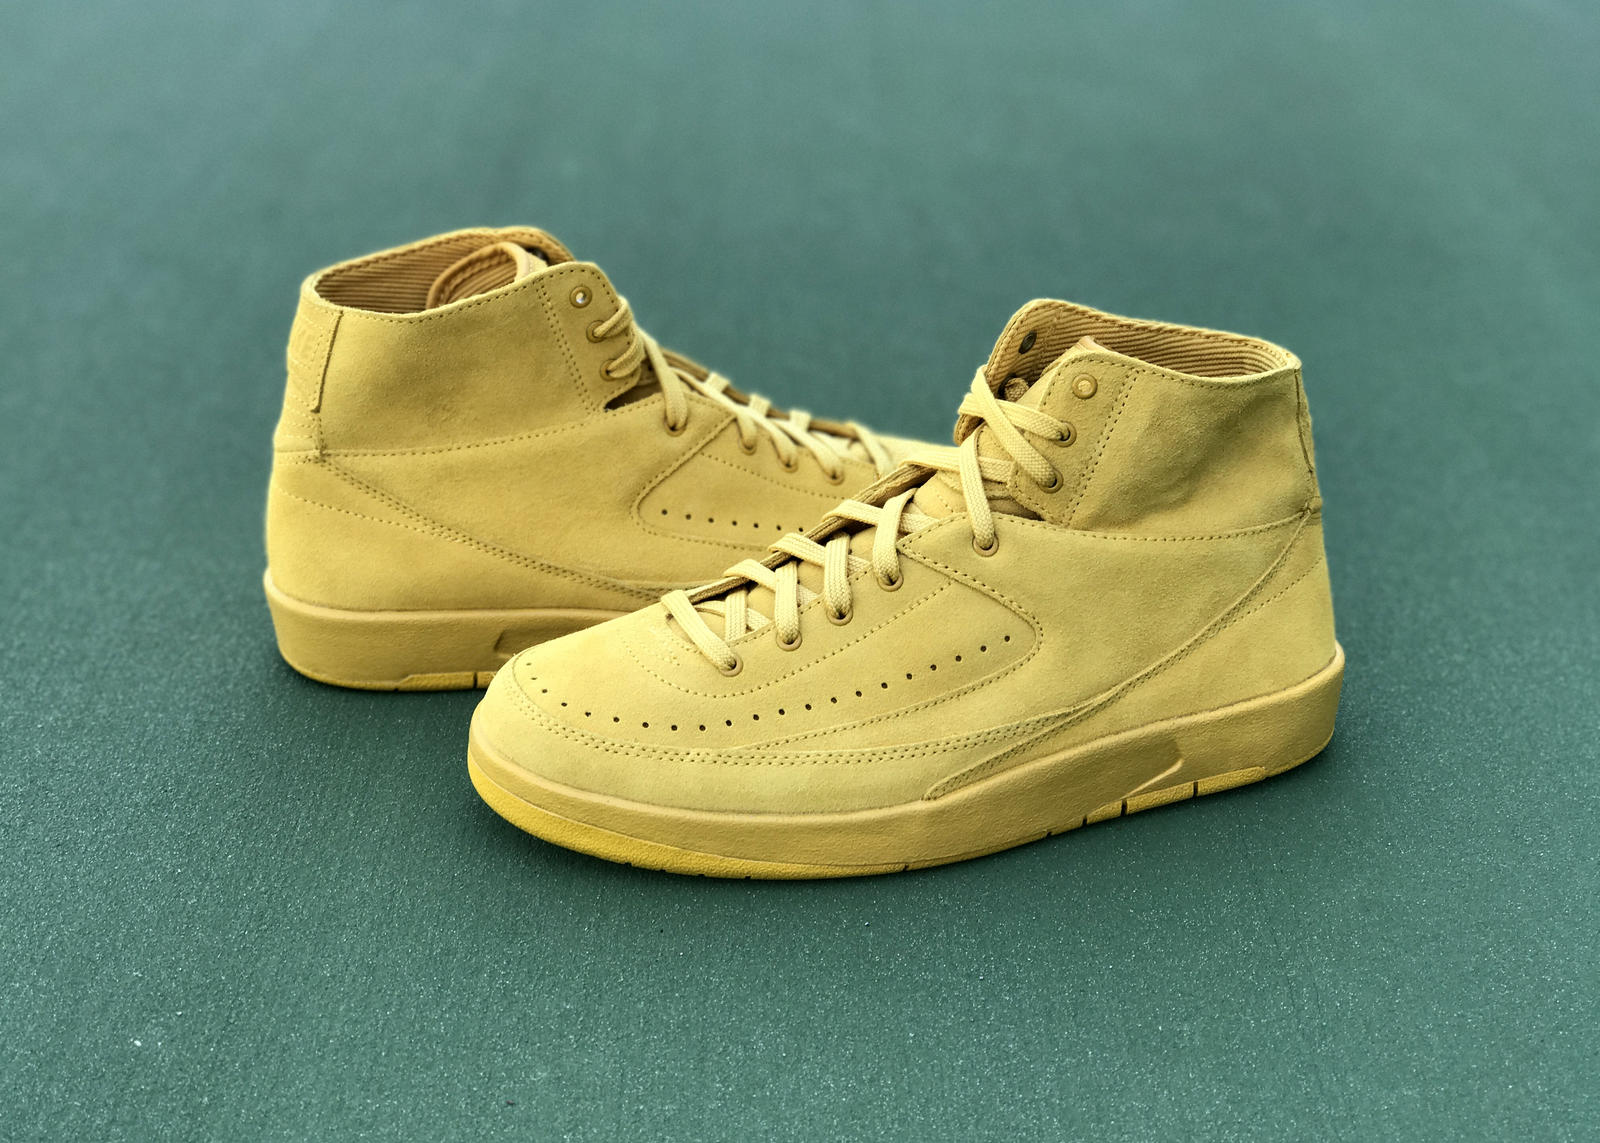 Air Jordan II Decon: The First Luxury Basketball Sneaker Gets Deconstructed 6